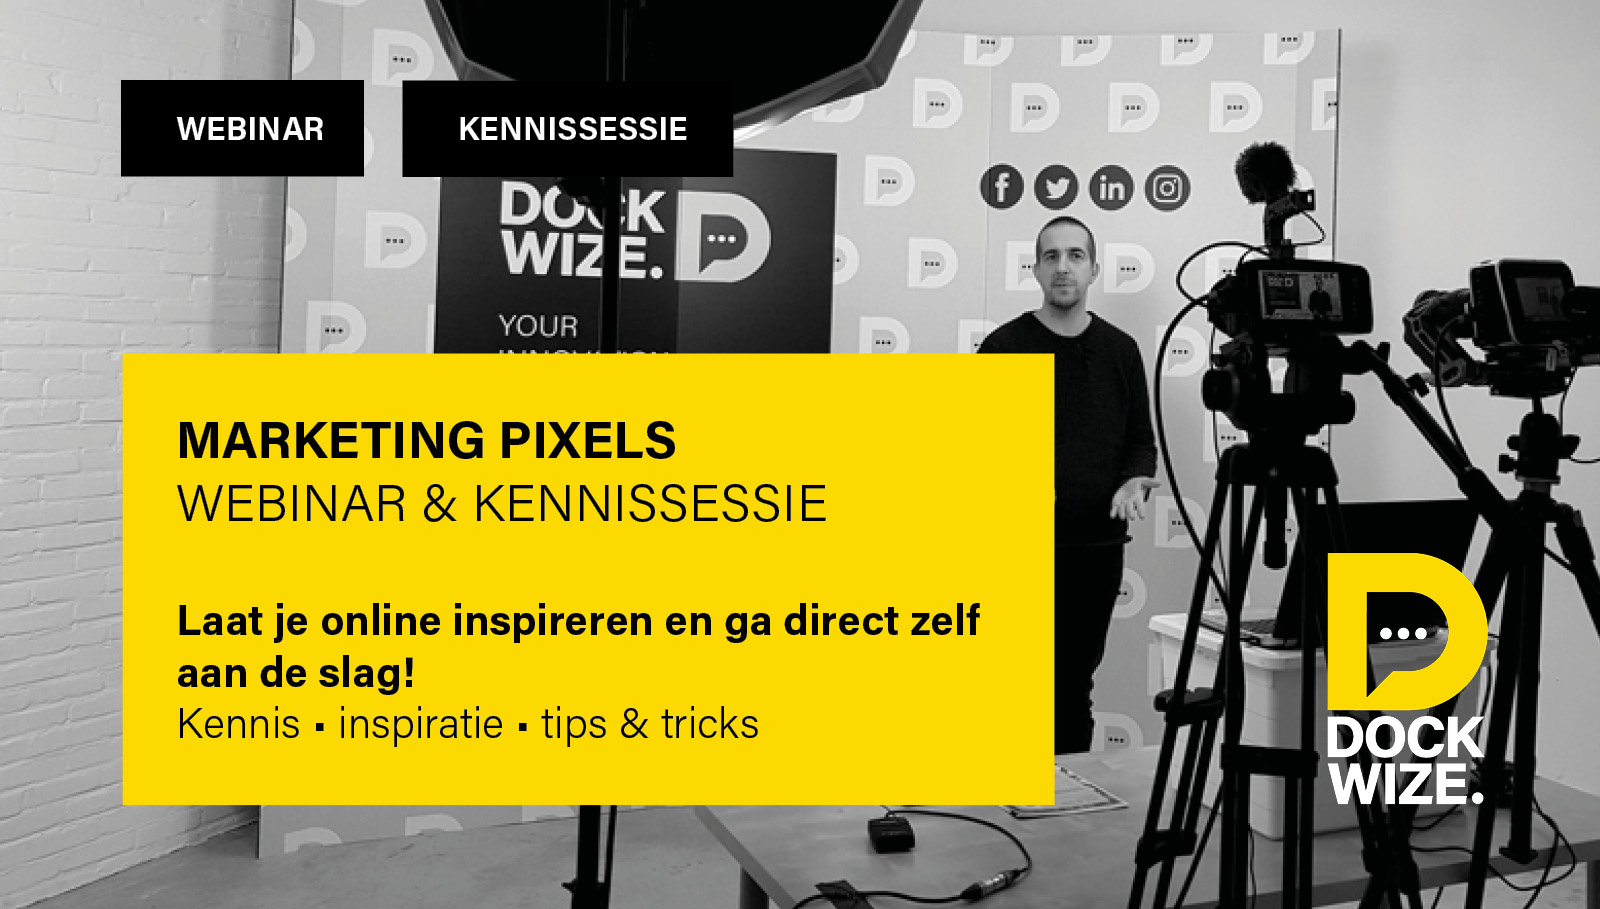 webinar marketing pixels perry van de vrede dockwize